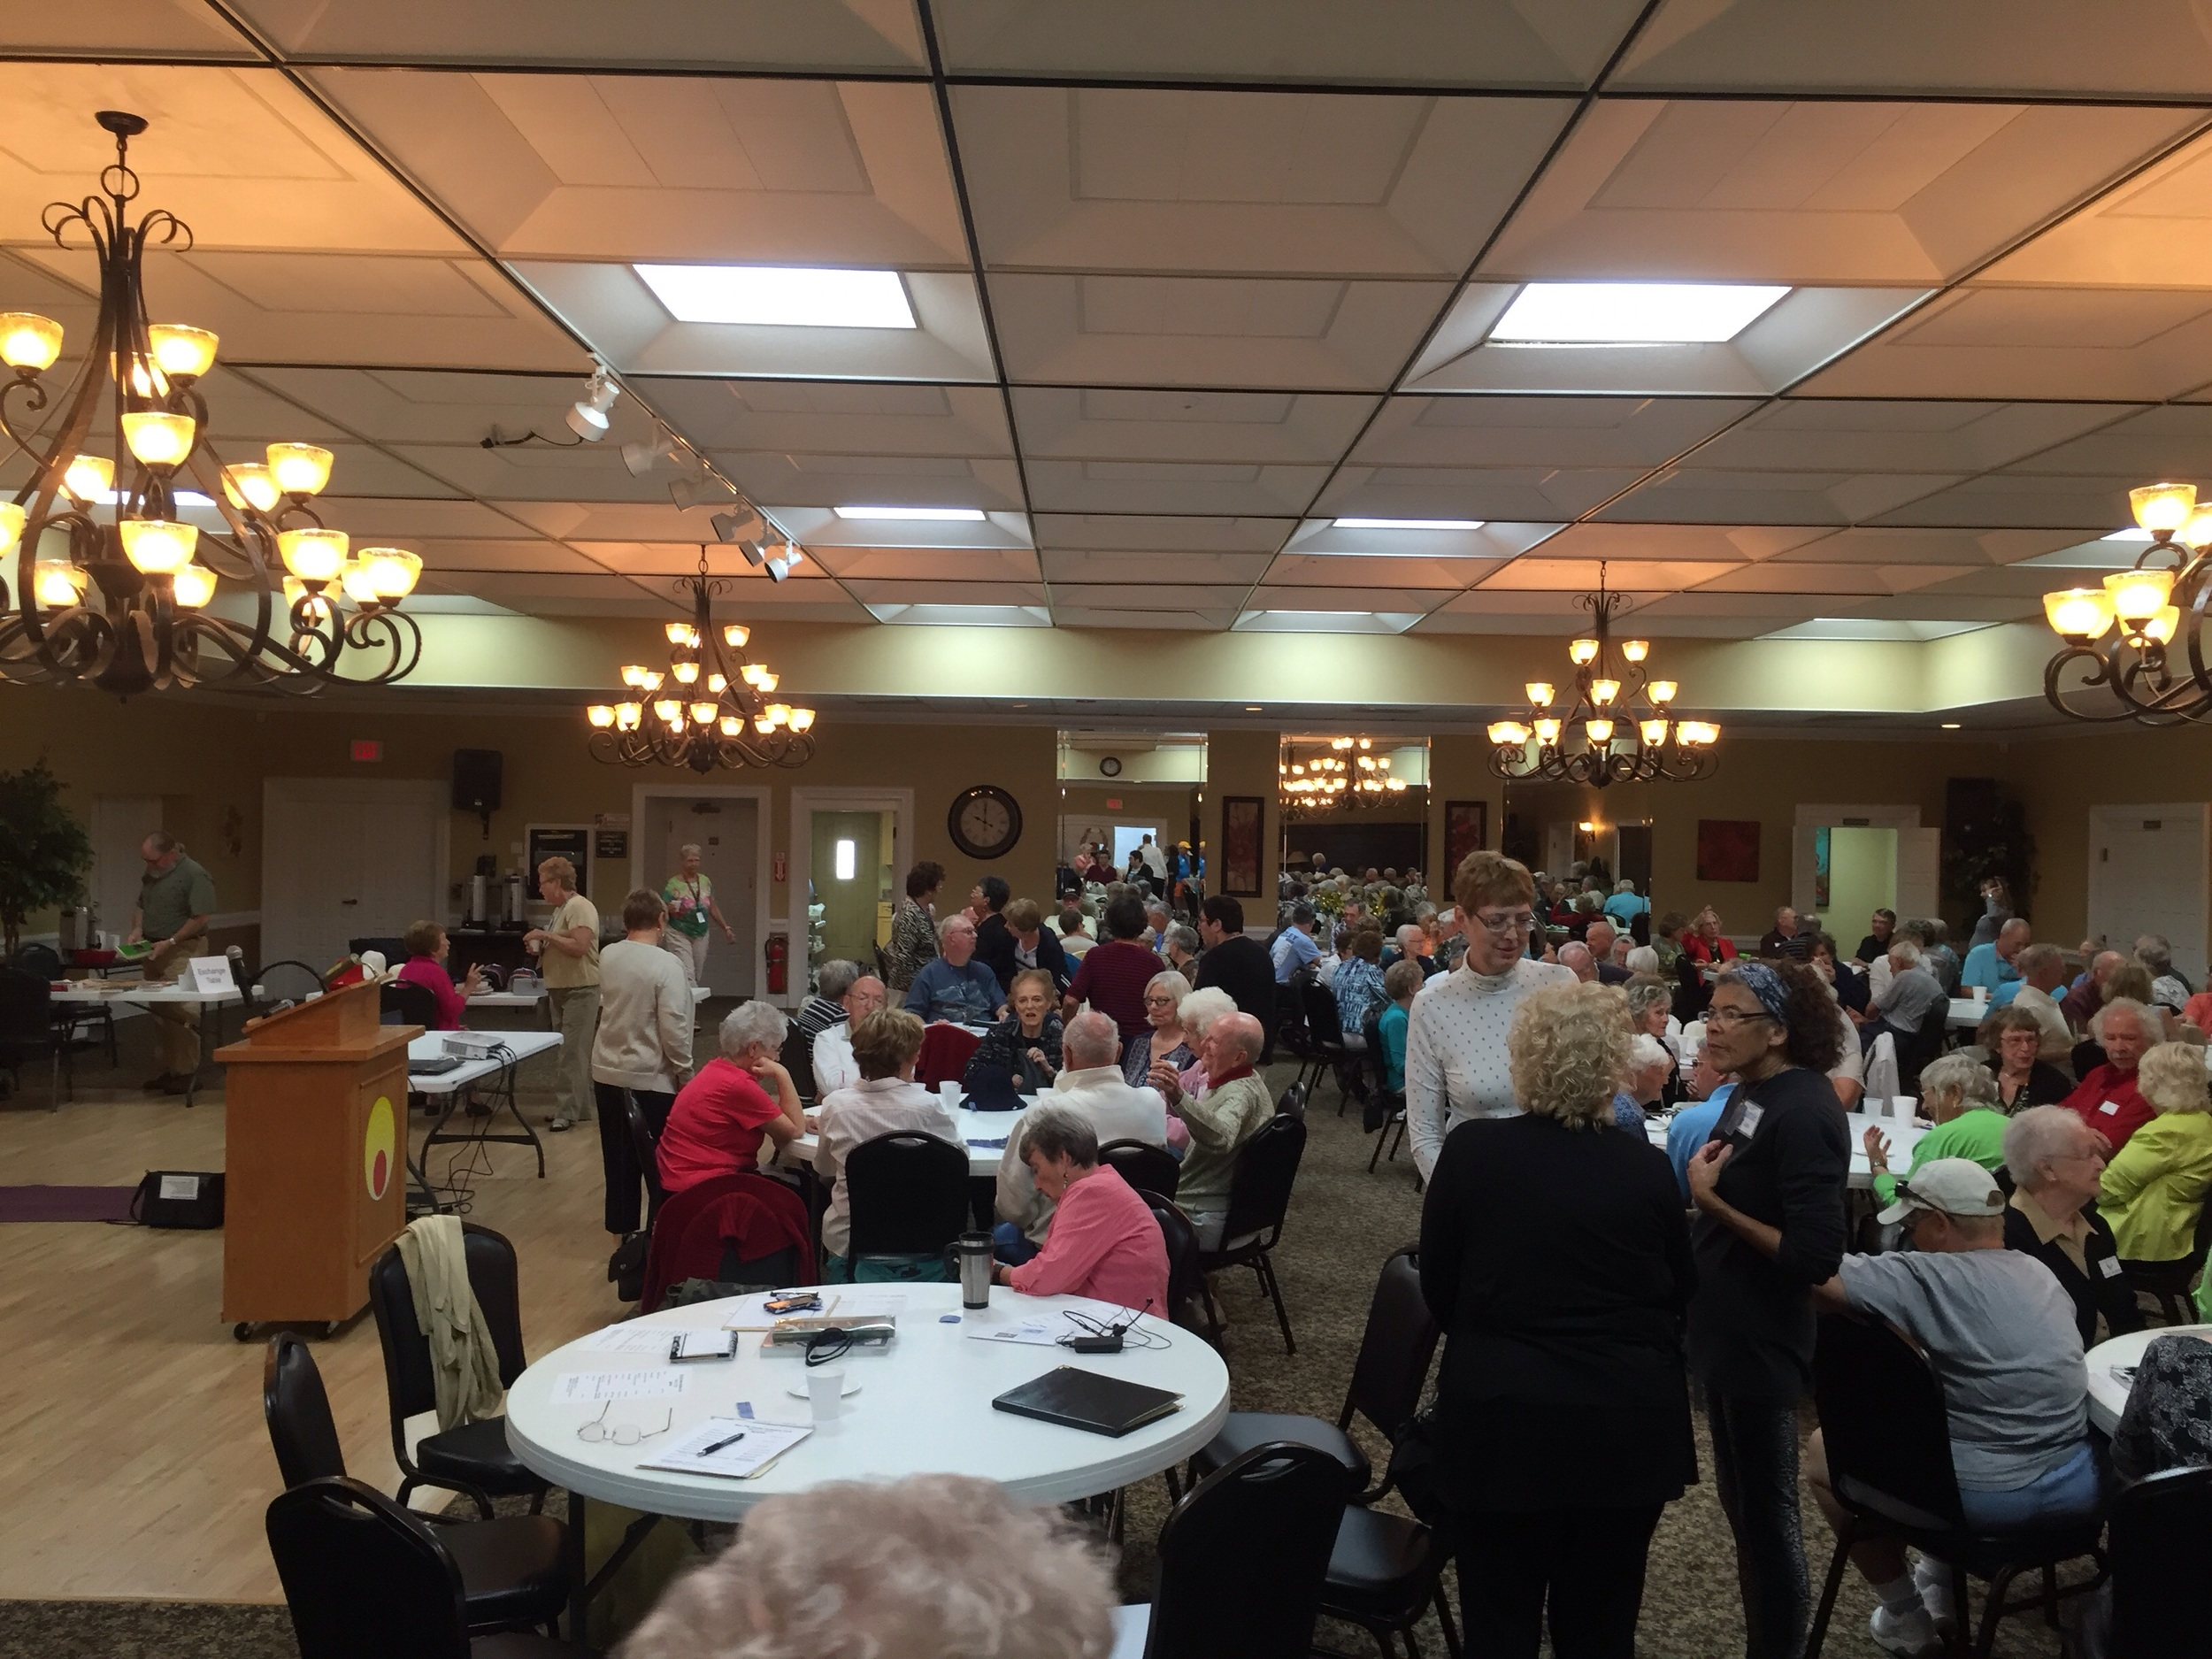 George's presentation was attended by around 150 members of the Audubon club.